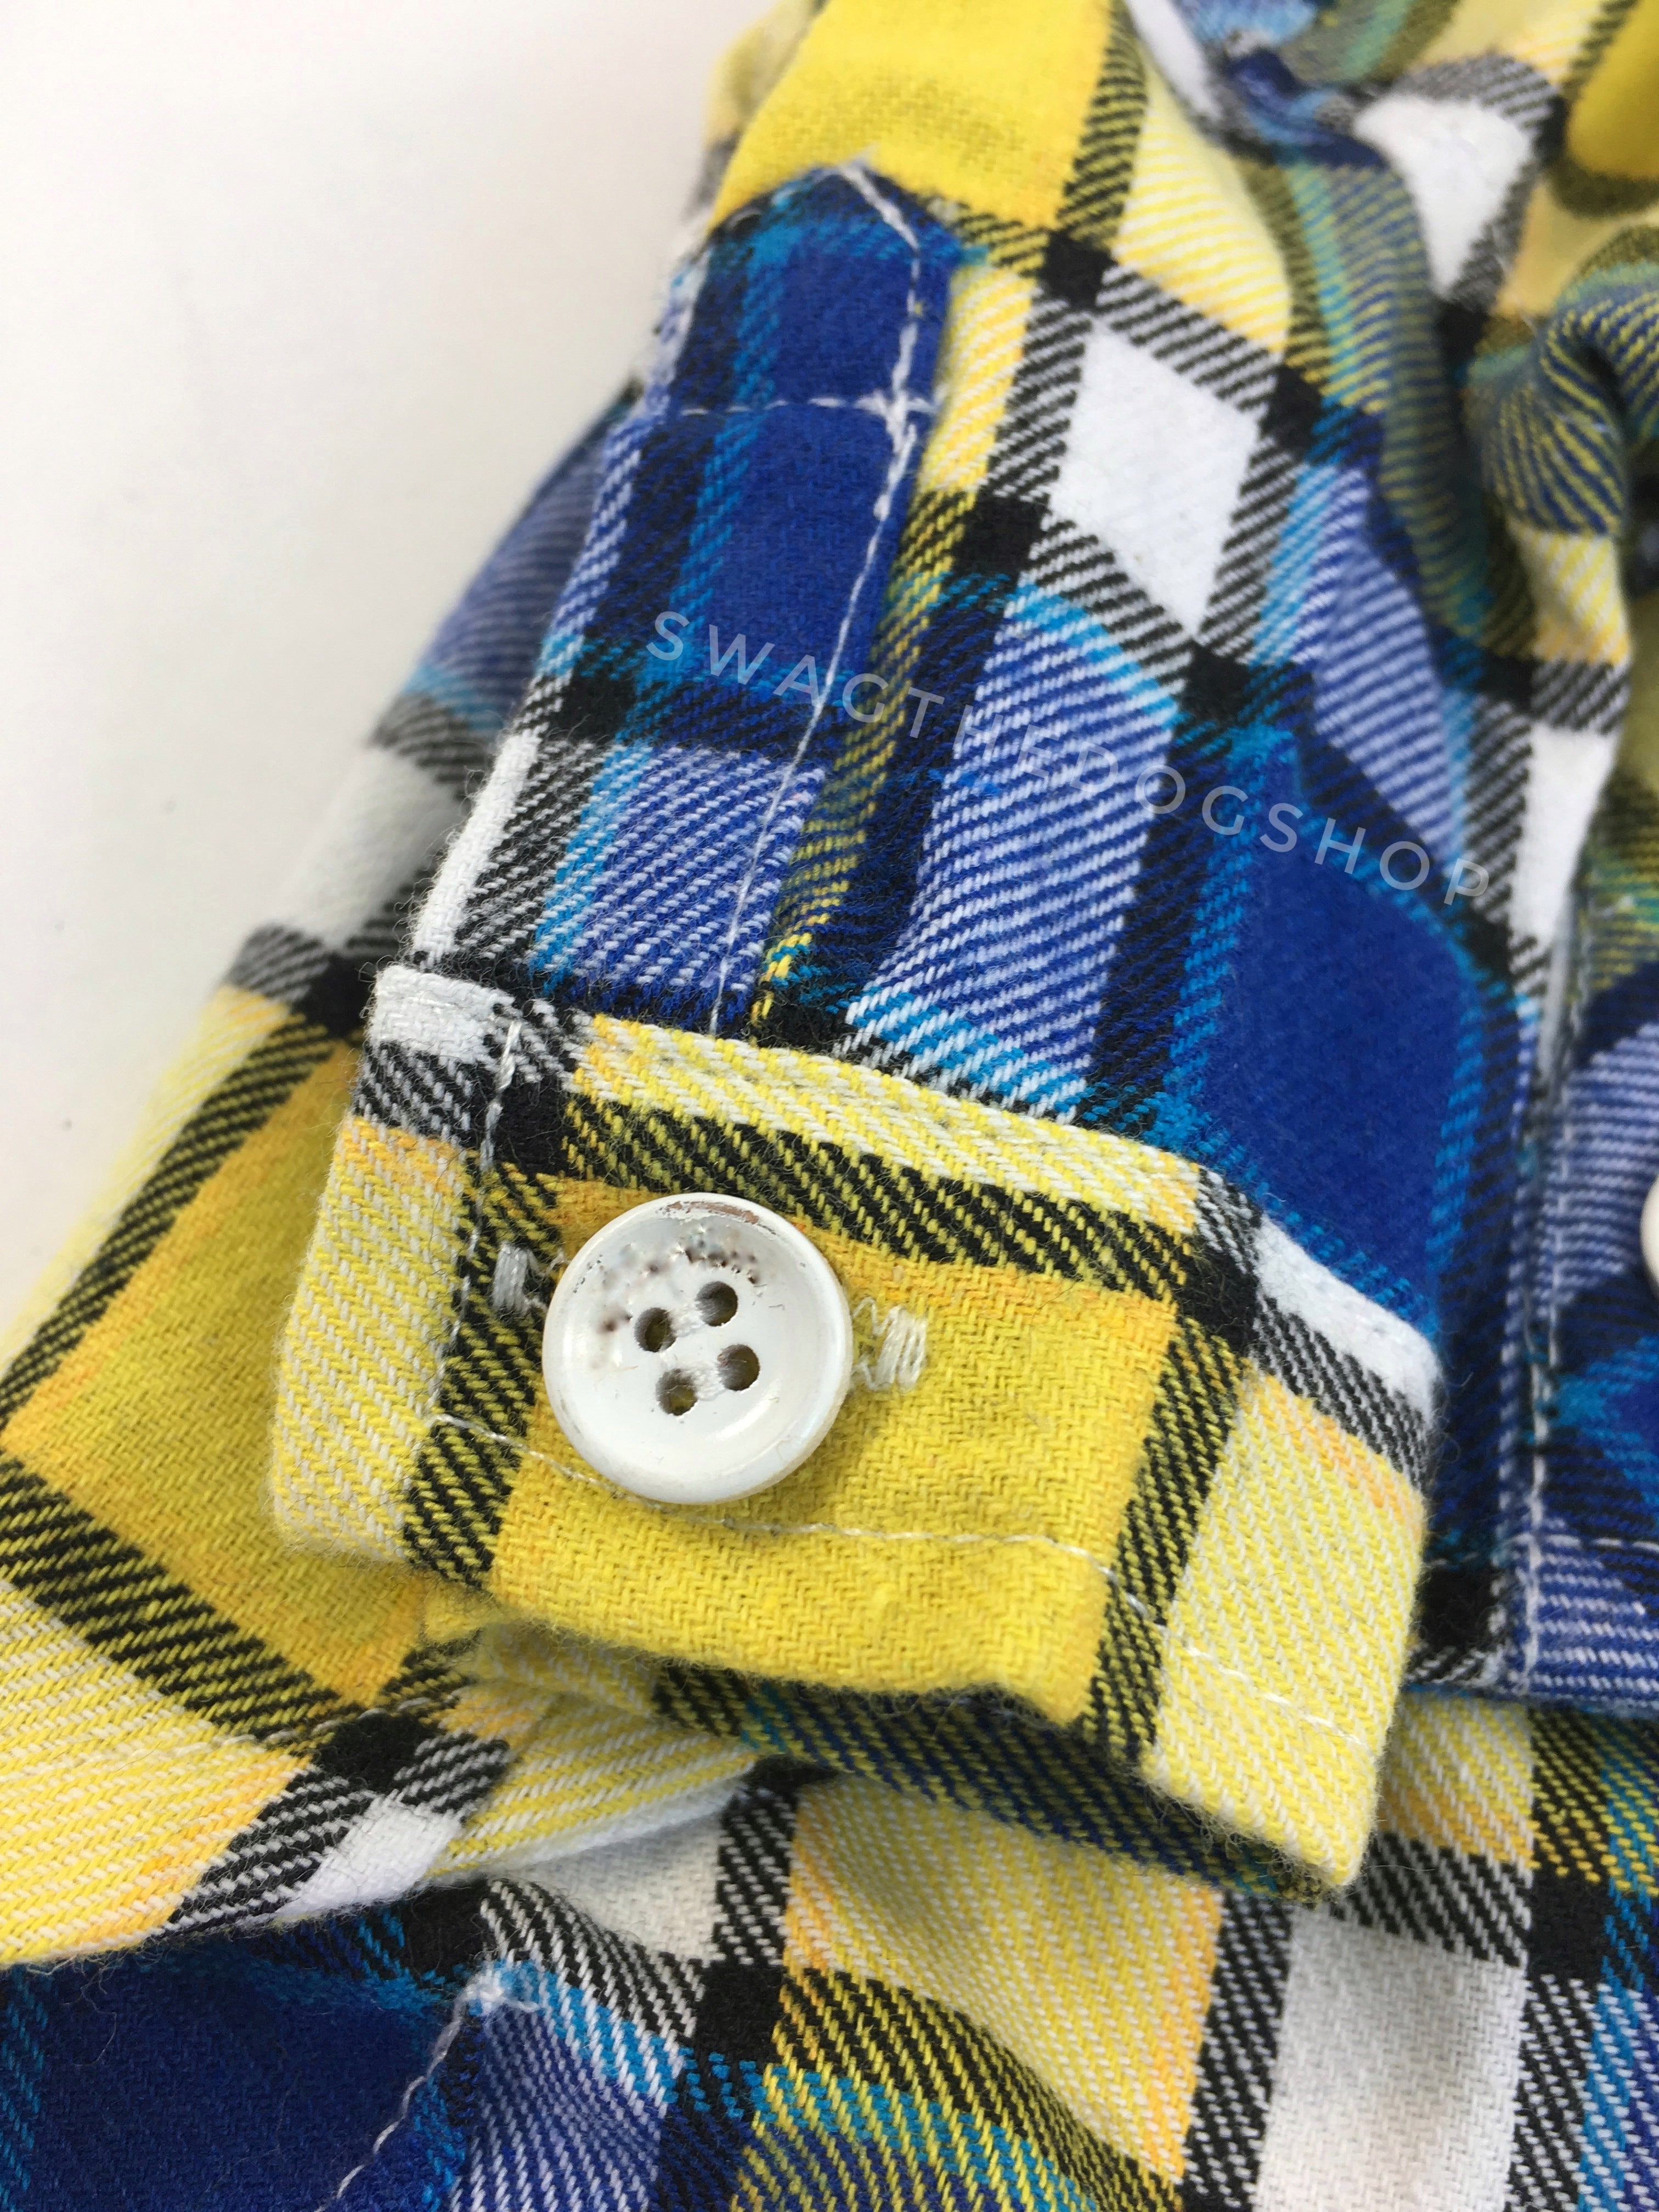 Royal Yellow Plaid Shirt - Close Up View of Sleeve. Royal Blue and Yellow Plaid Shirt